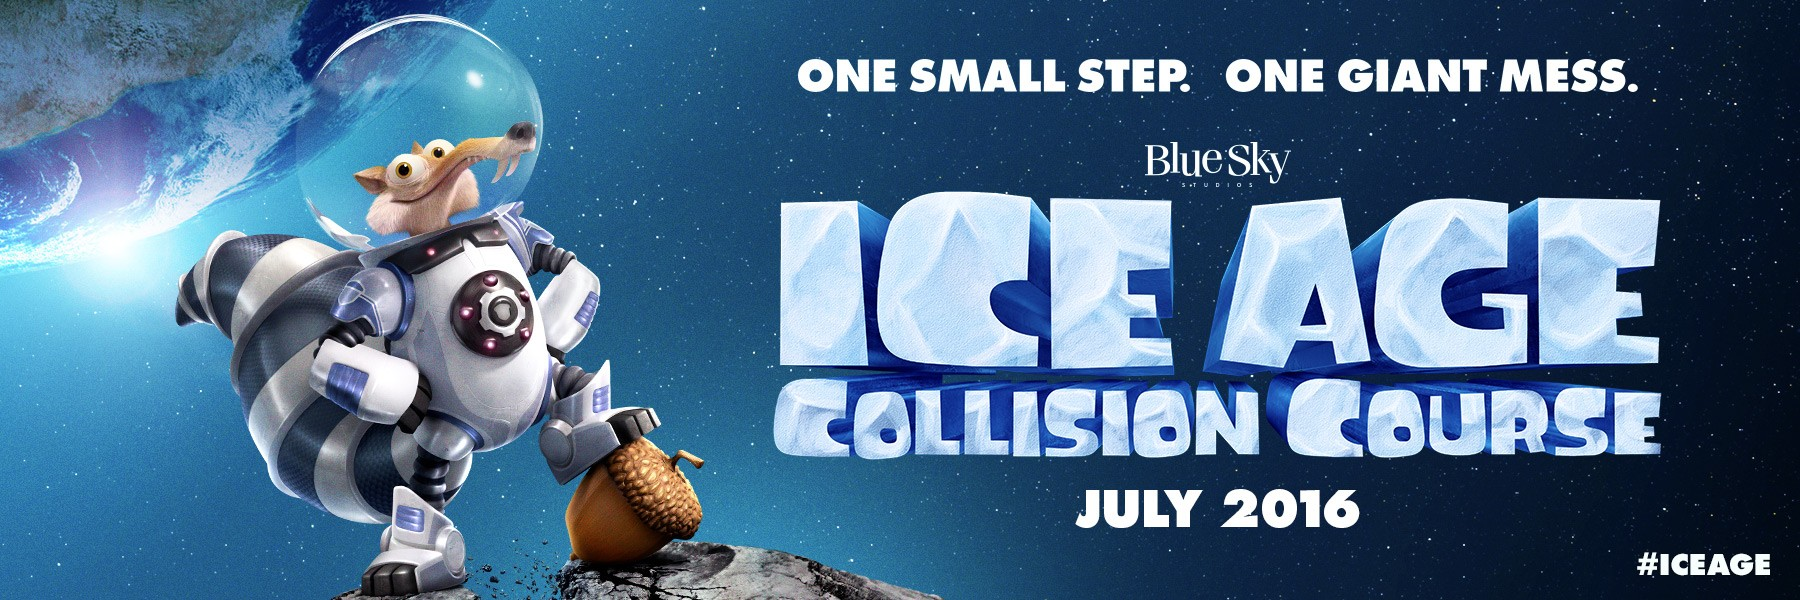 Ice Age Collision Course Movie Wallpapers Hd Wallpapers 1800x600